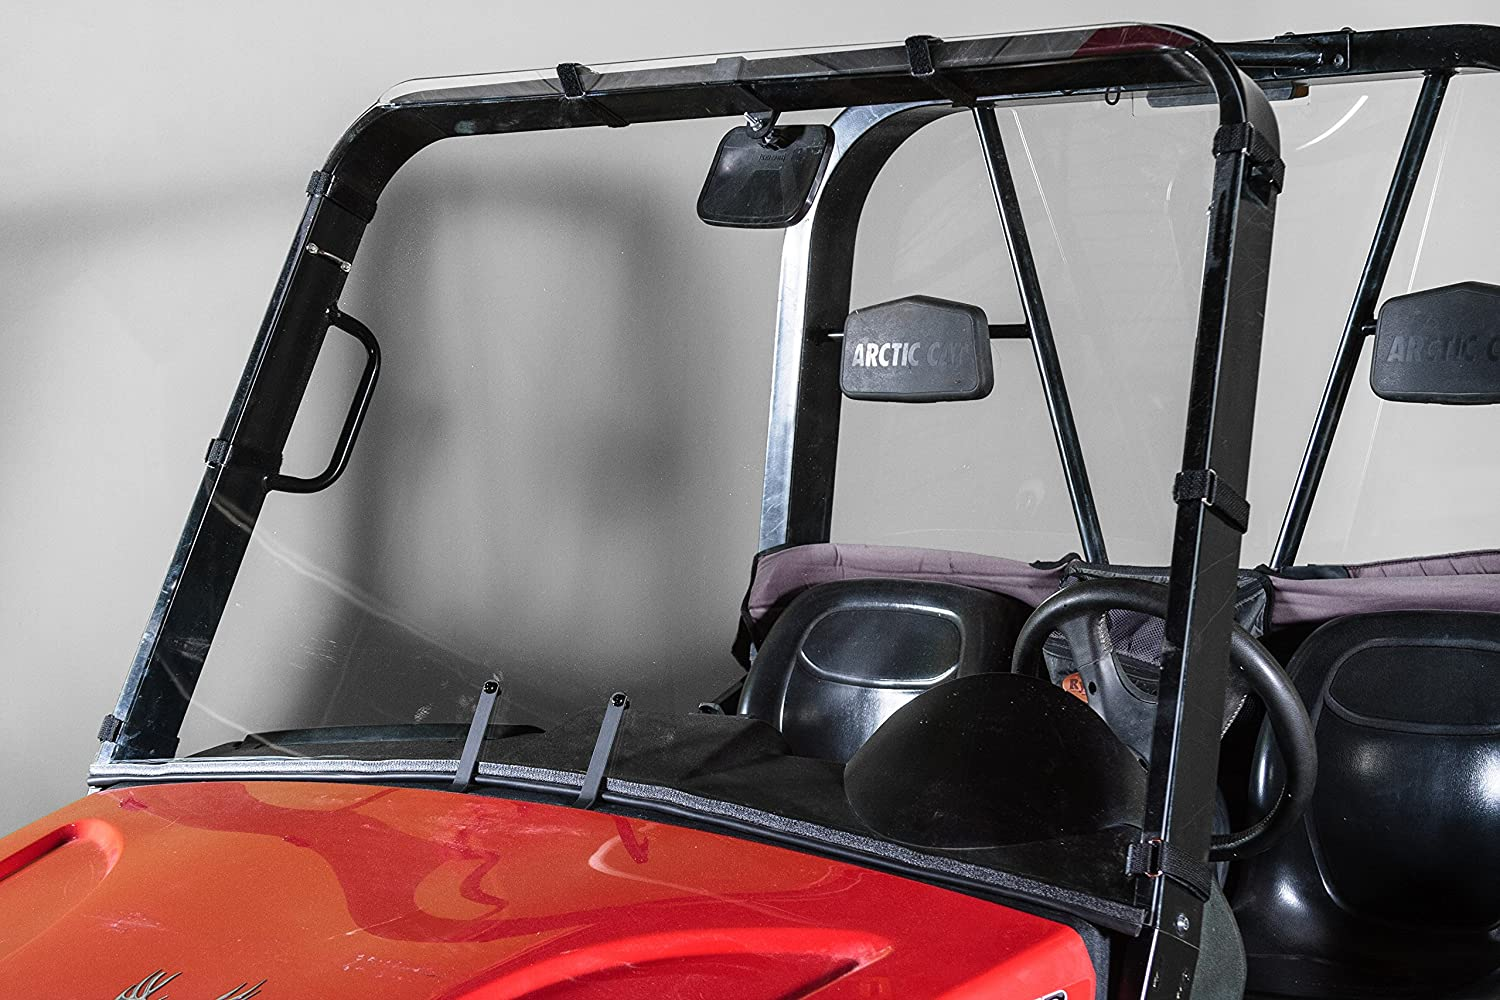 Arctic Cat Prowler Full UTV Windshield 3//16 Models 2006-2010 Made in the USA!.